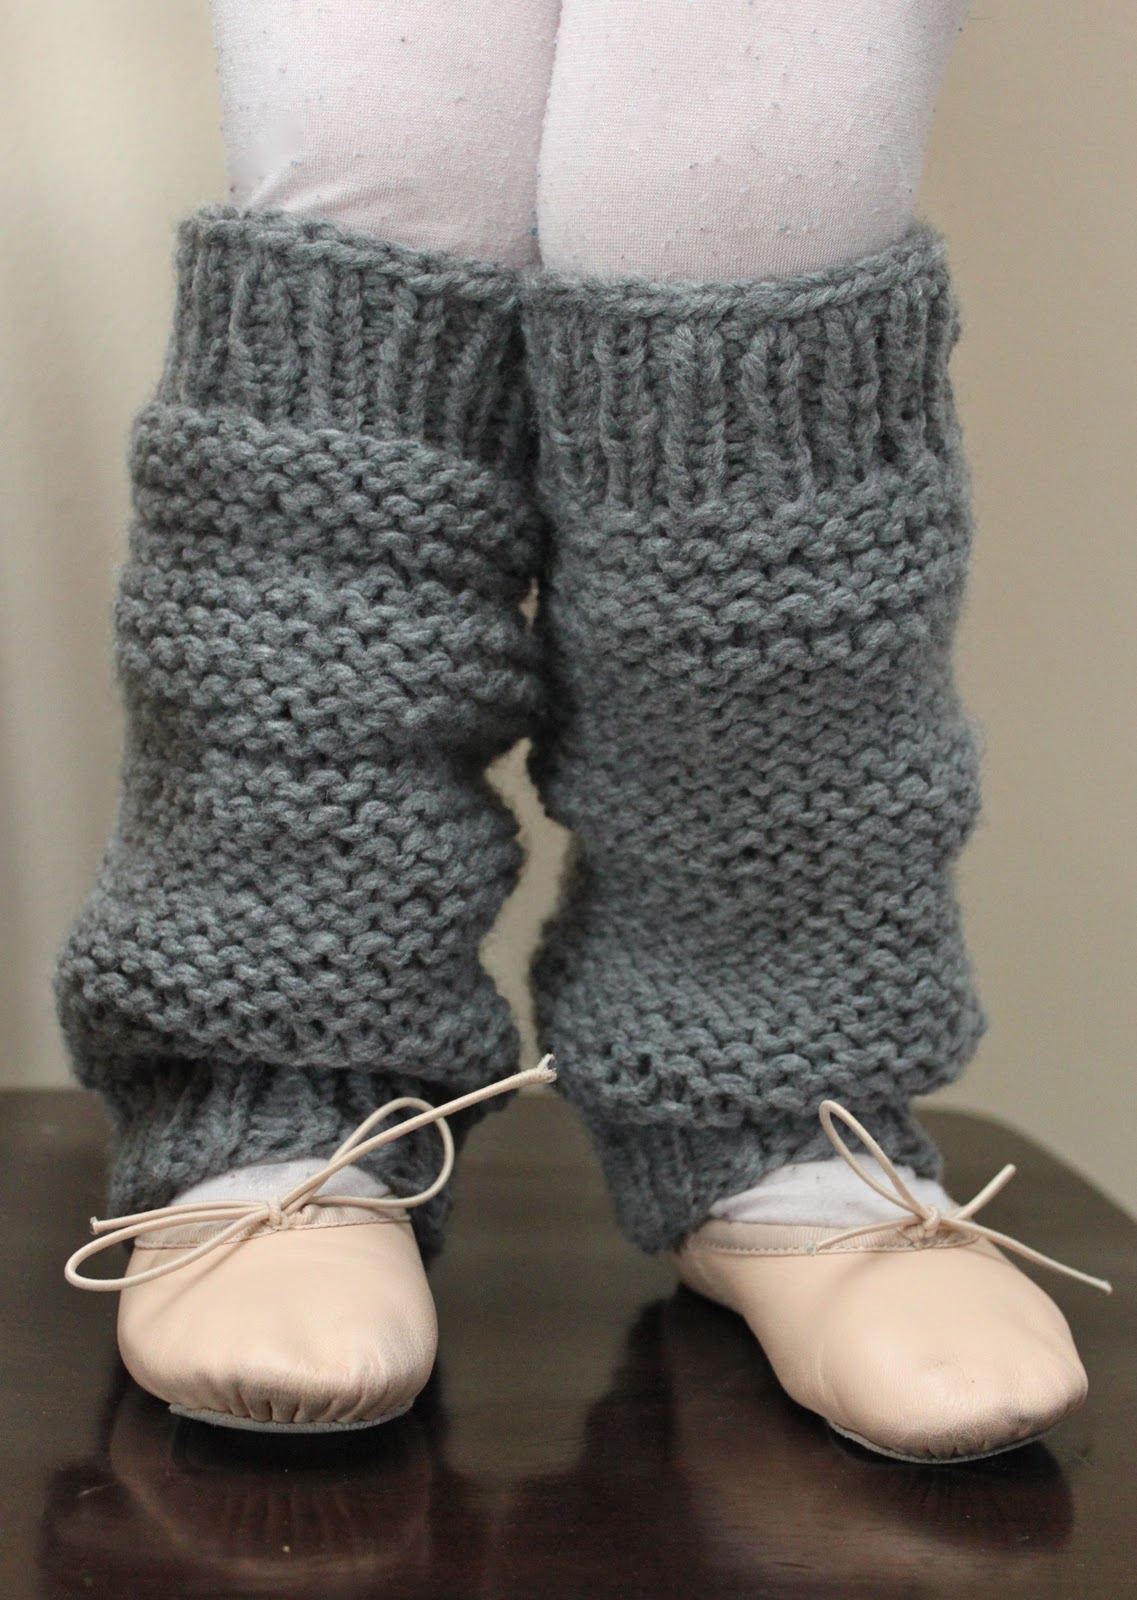 Knitting Patterns Leg Warmers Ballet : Little Girls Knit Legwarmers {A Pattern} - Smashed Peas & Carrots